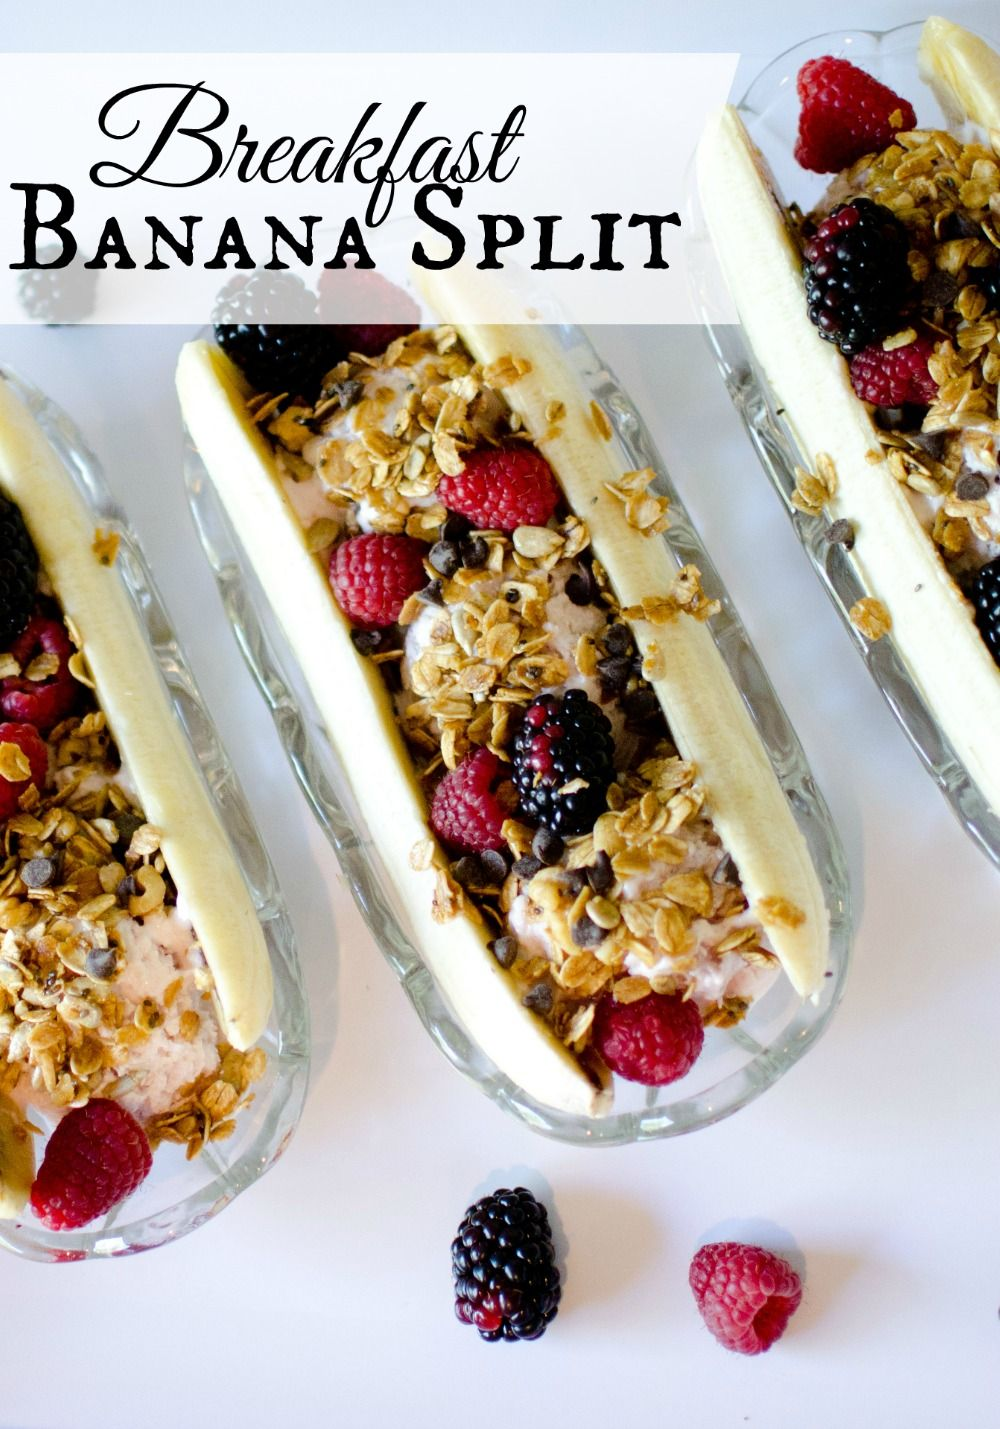 Be a hero and serve this healthy banana split for breakfast!  Shhh! they'll never know it's good for them!